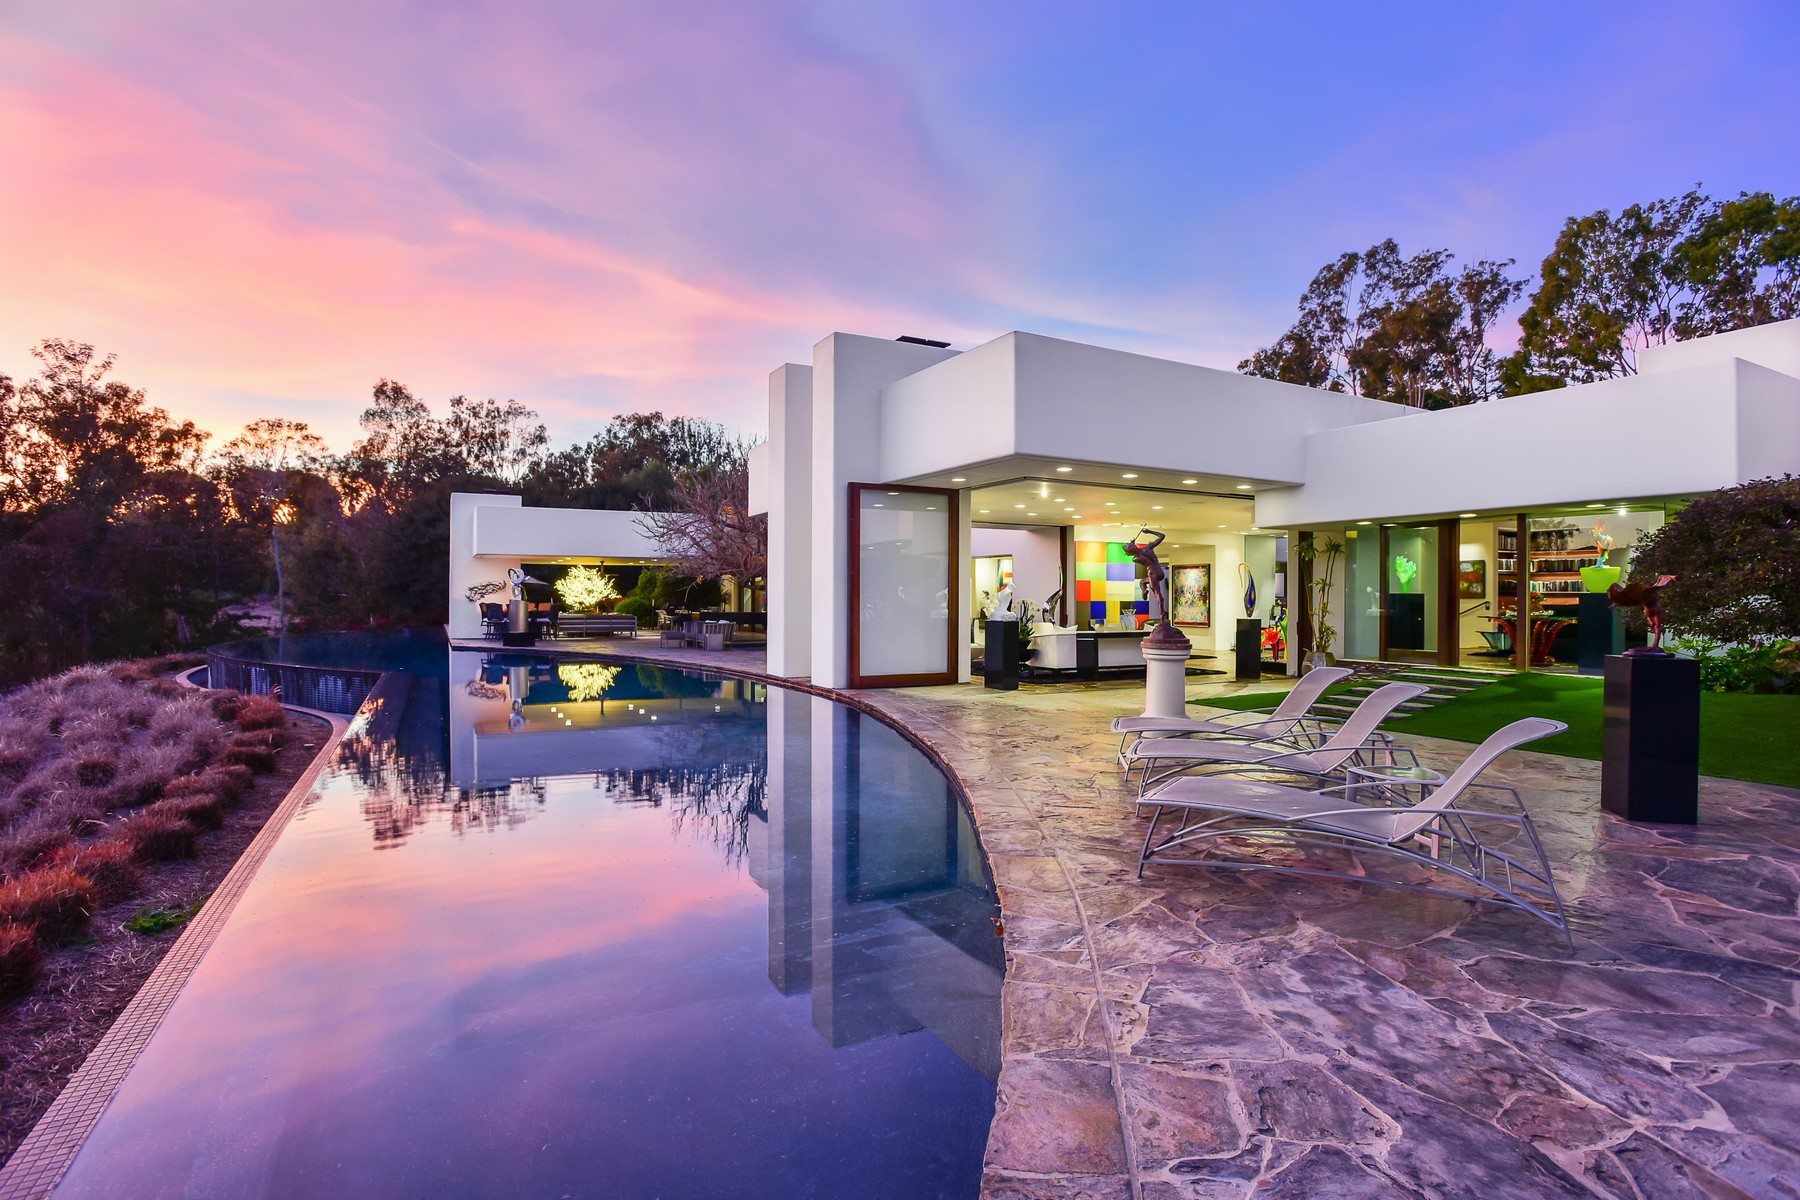 Single Family Home for Sale at 5410 Los Mirlitos 5410 Los Mirlitos Rancho Santa Fe, California 92067 United States